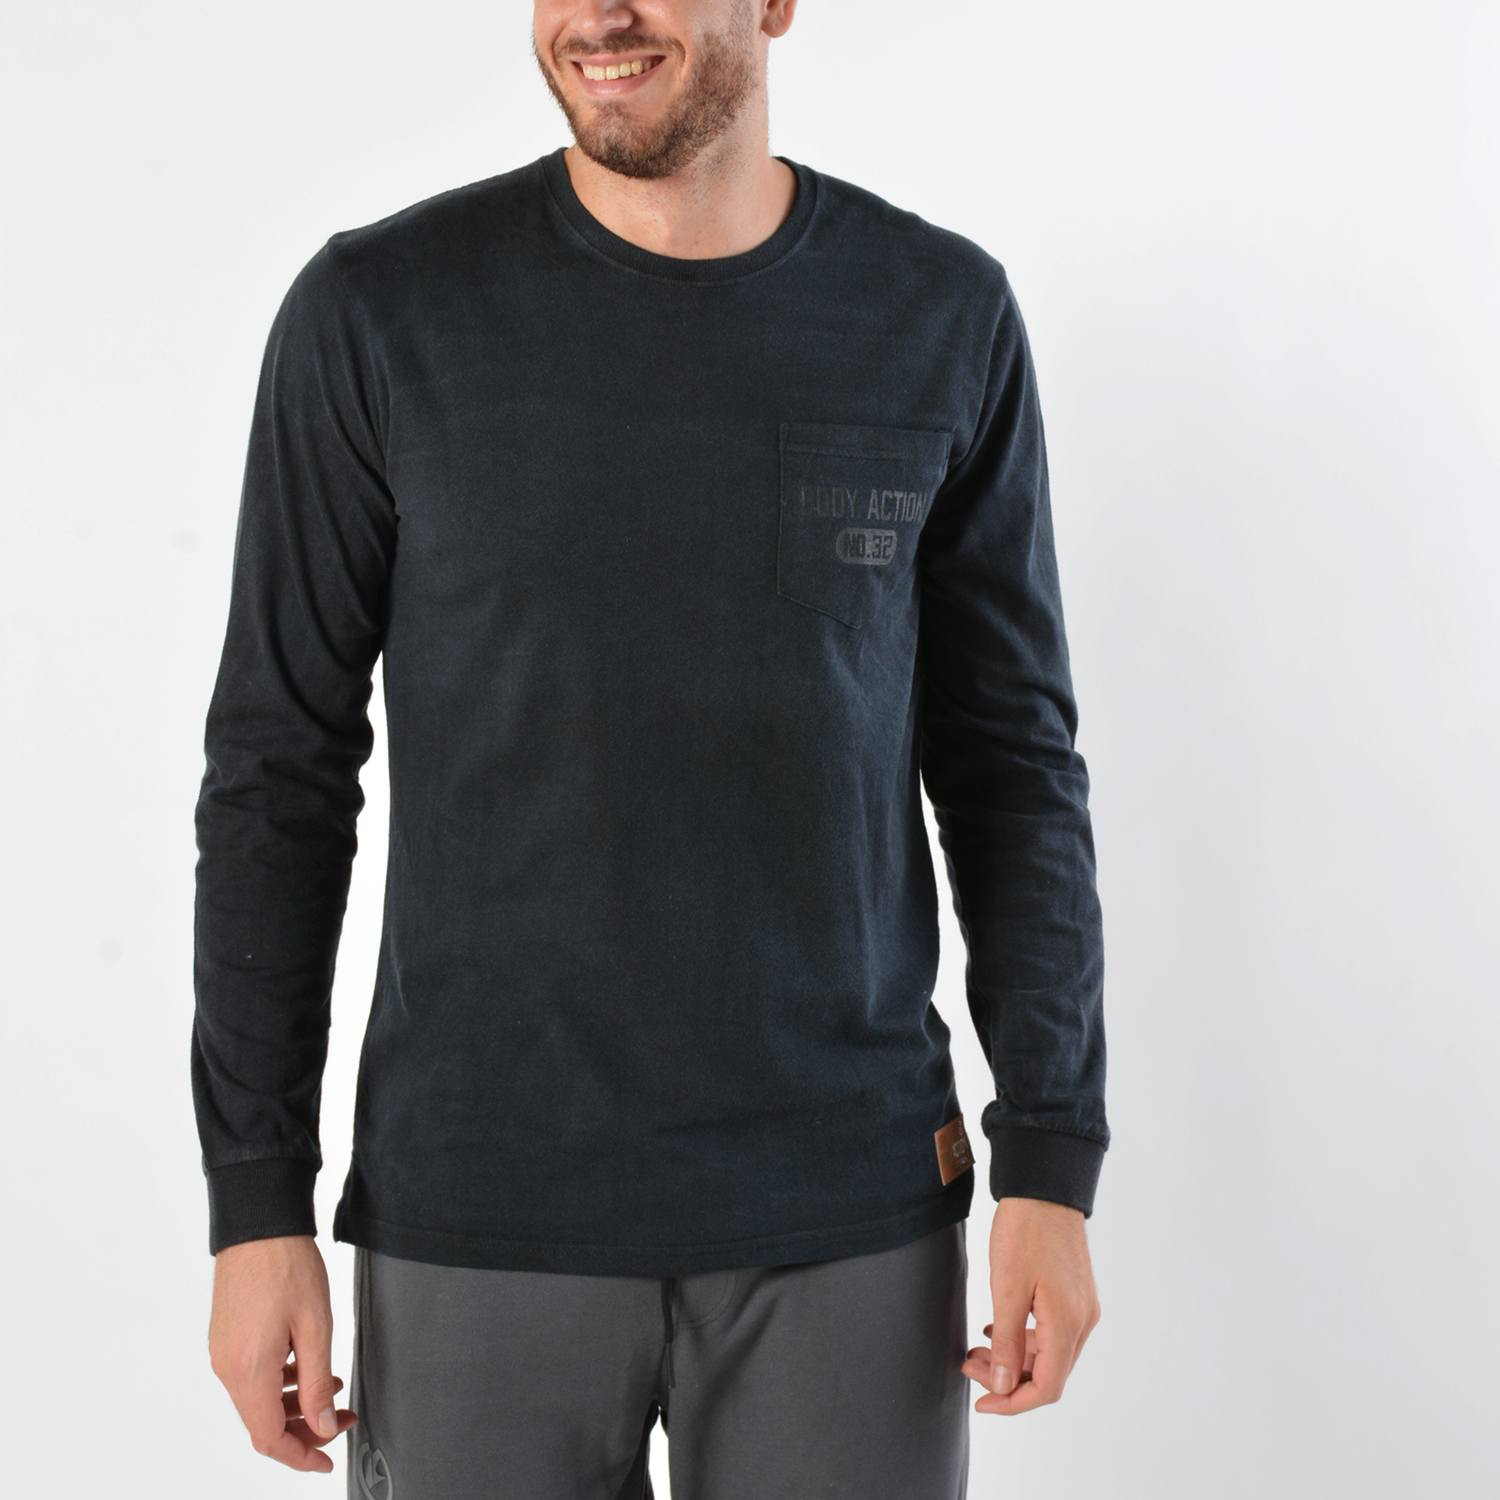 Body Action Men's Washed Long Sleeve Tee (9000016608_1899)